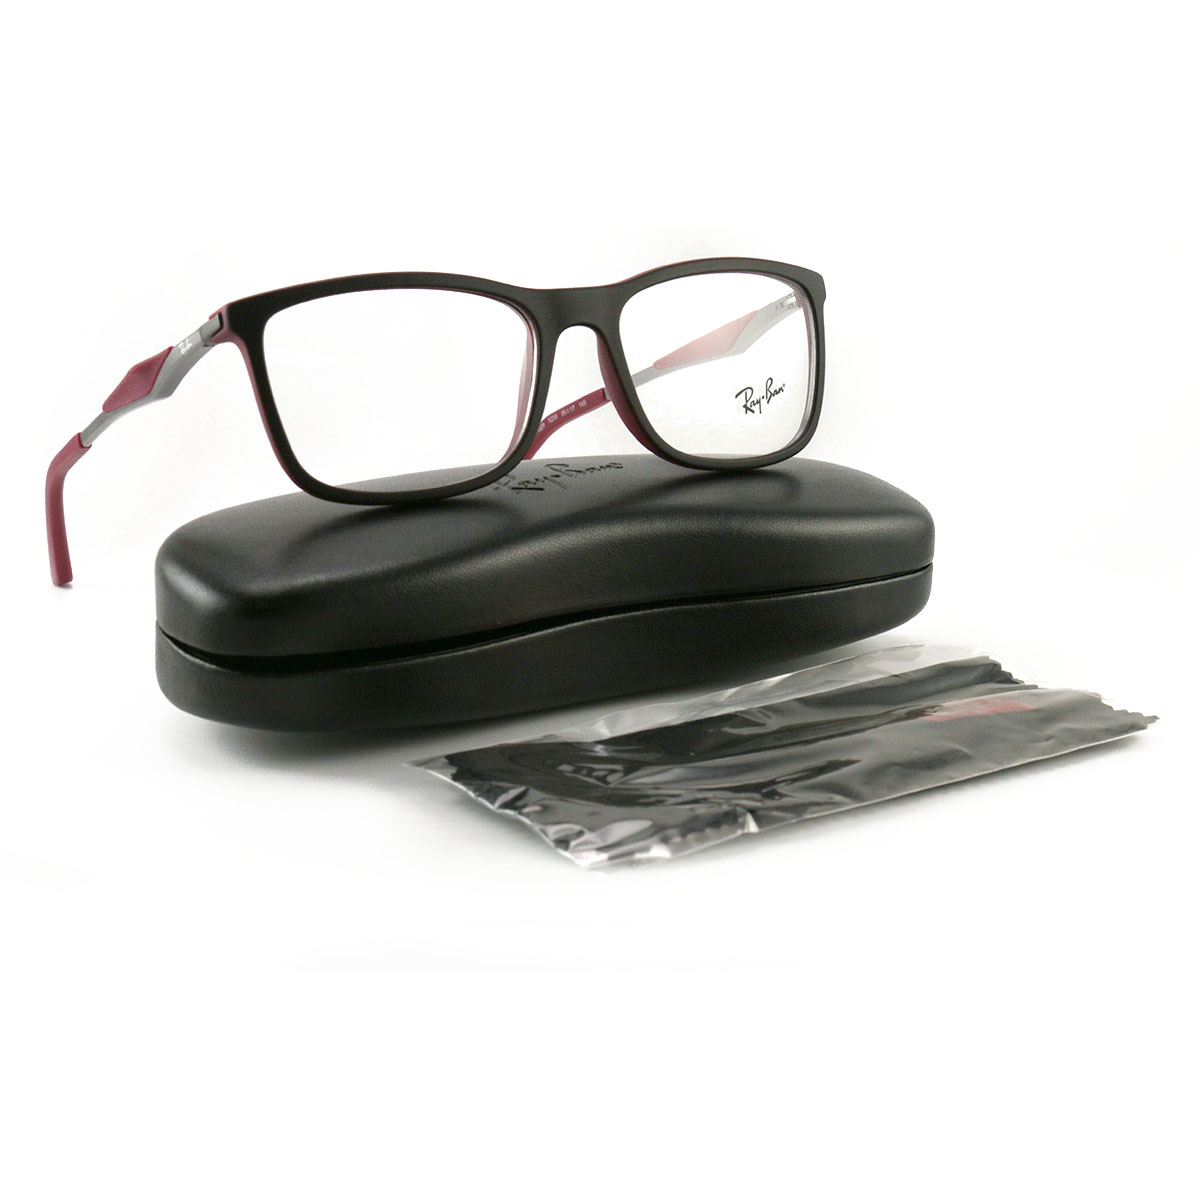 625dcb7ba0 Details about Ray Ban Men Eyeglasses RX7029 5259 Top Black Matte 55 17 145  Demo Lens Lifestyle